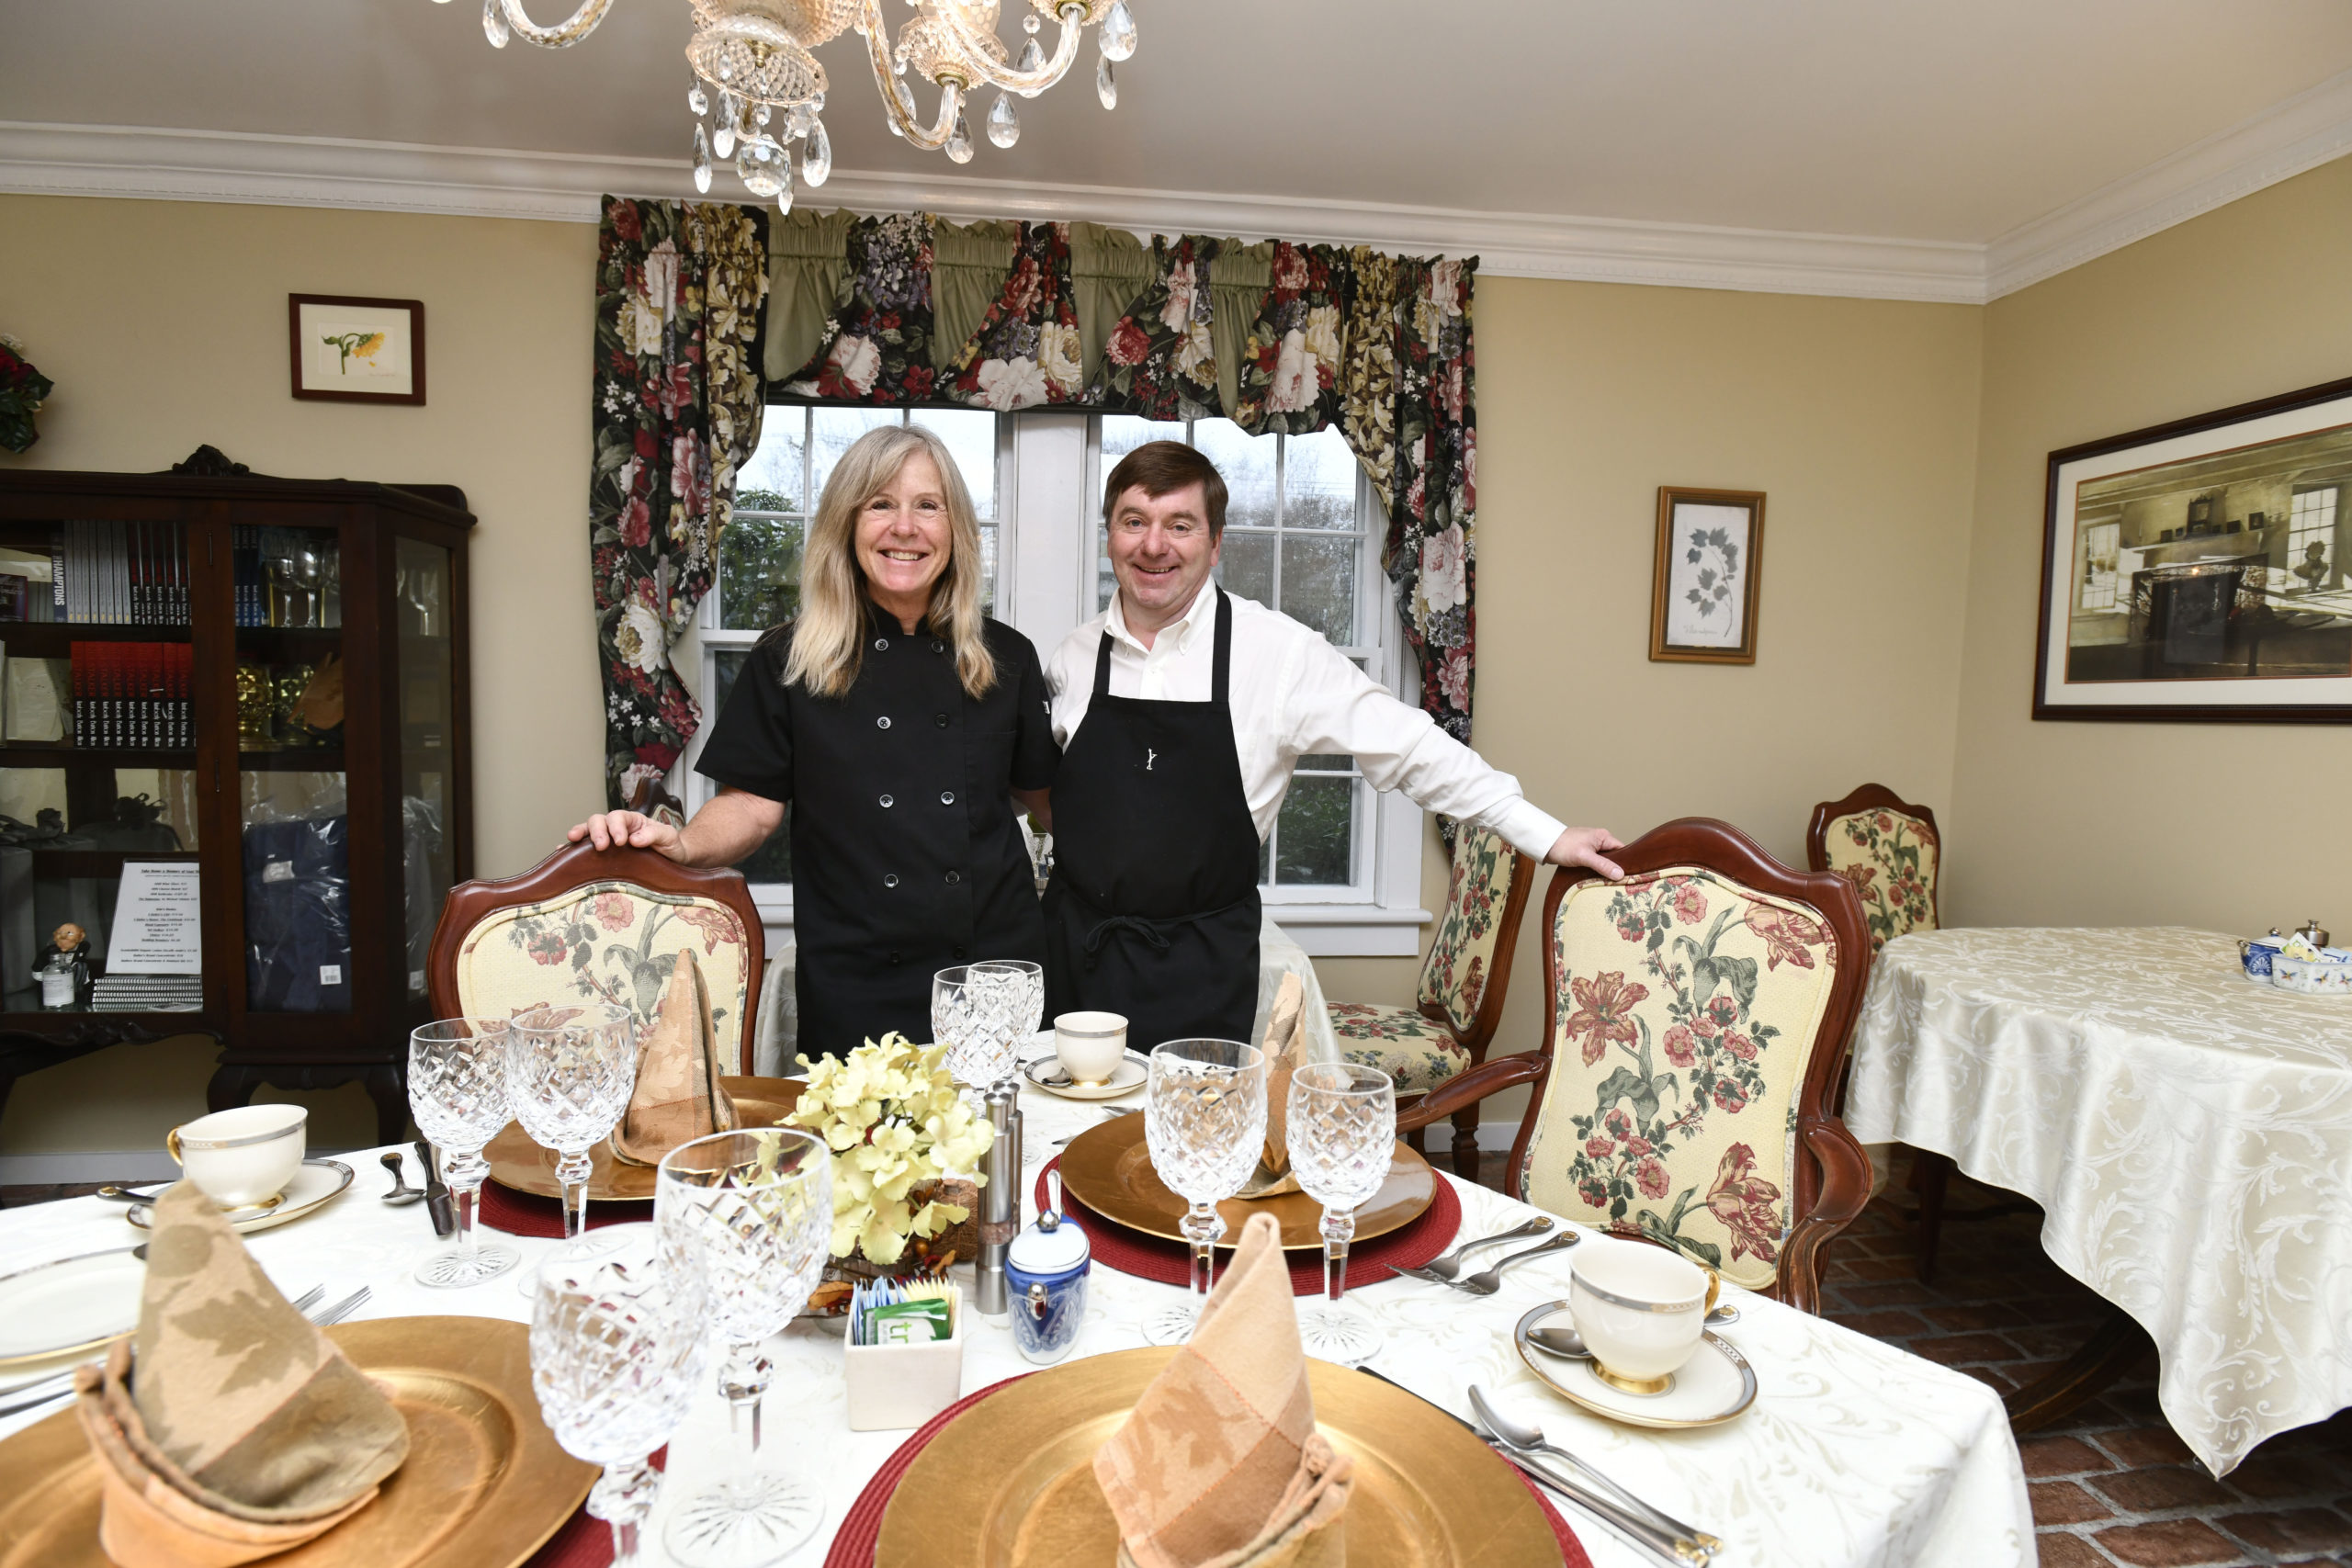 Chris and Kimberly Allen at A Butler's Manor in Southampton Village. DANA SHAW